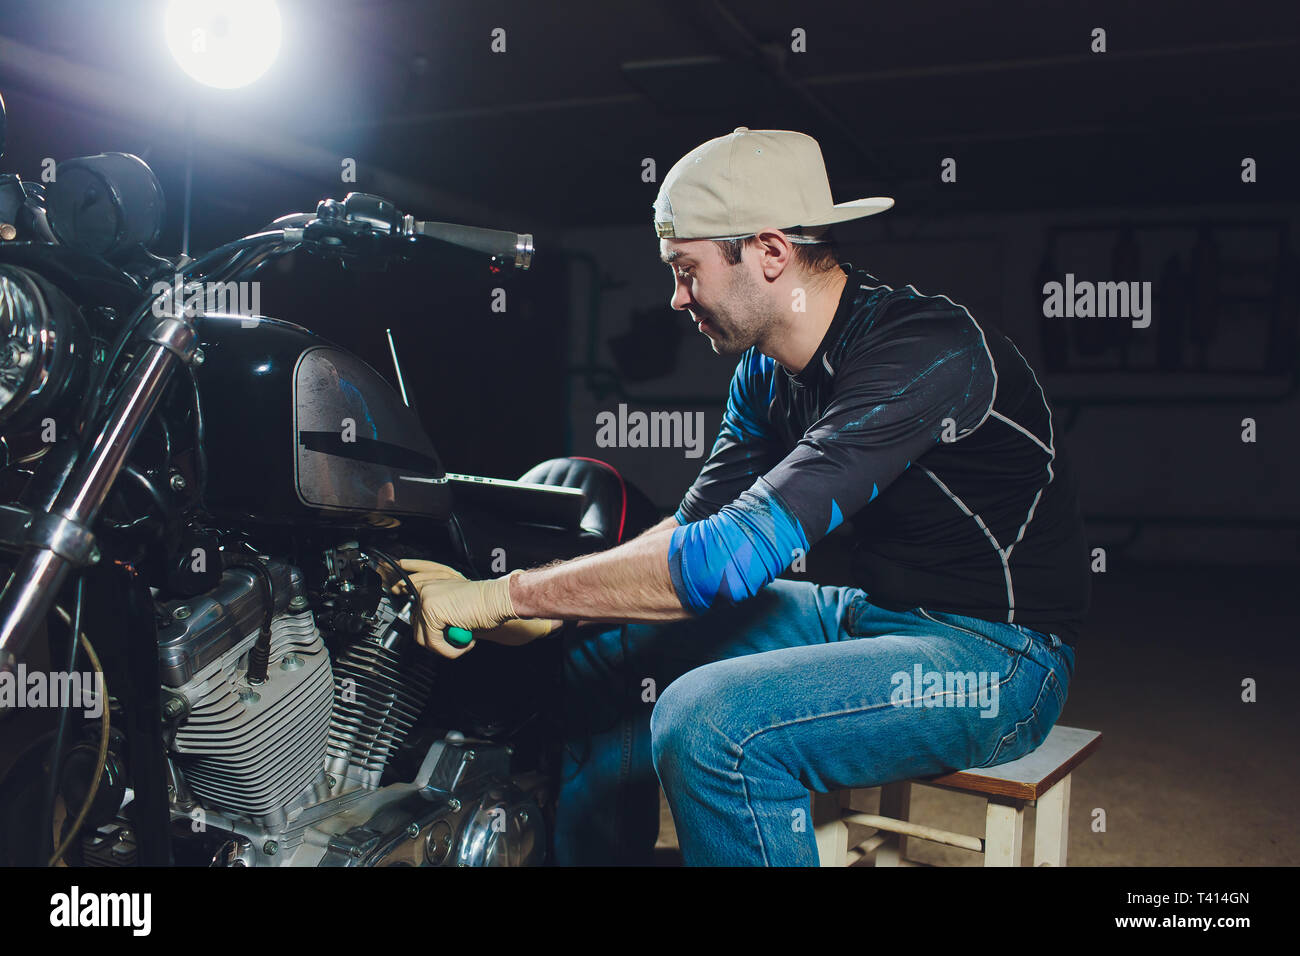 motorcycle mechanic repairing engine under supervisors guidance. video camera, laptop to view the inside of the engine to check soot. - Stock Image